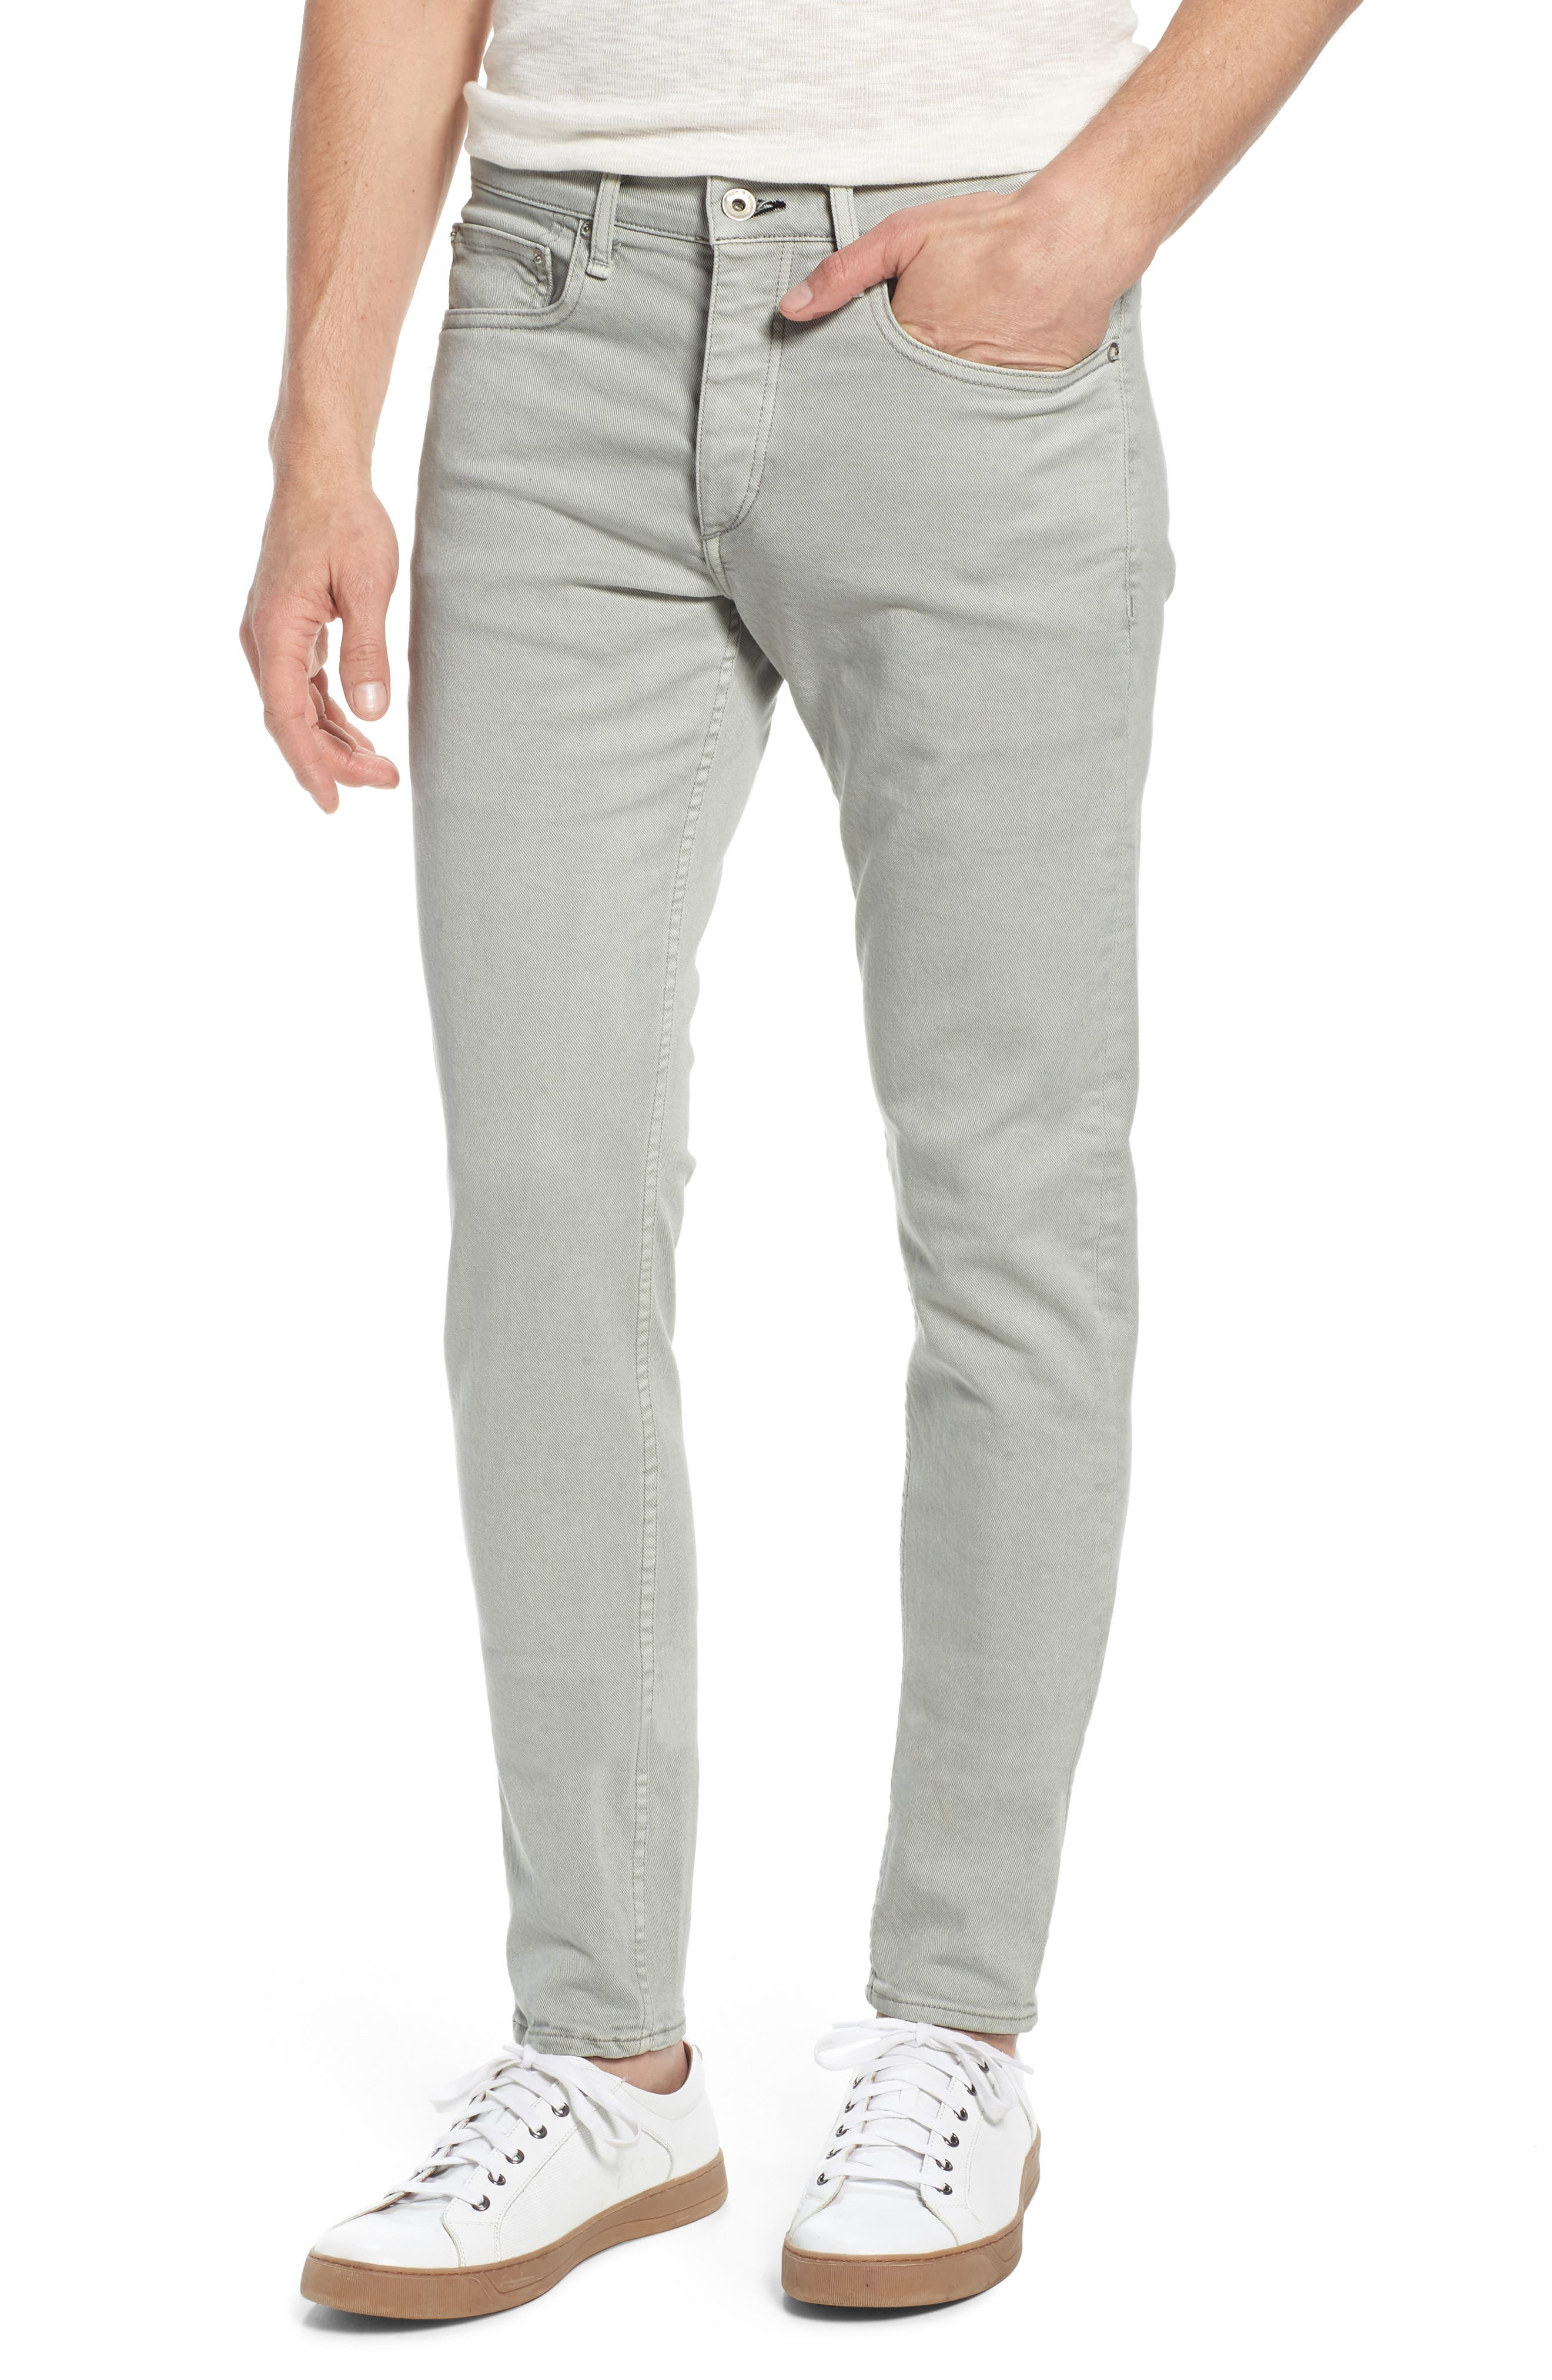 Fit 1 Skinny Fit Jeans,                             Main thumbnail 1, color,                             250